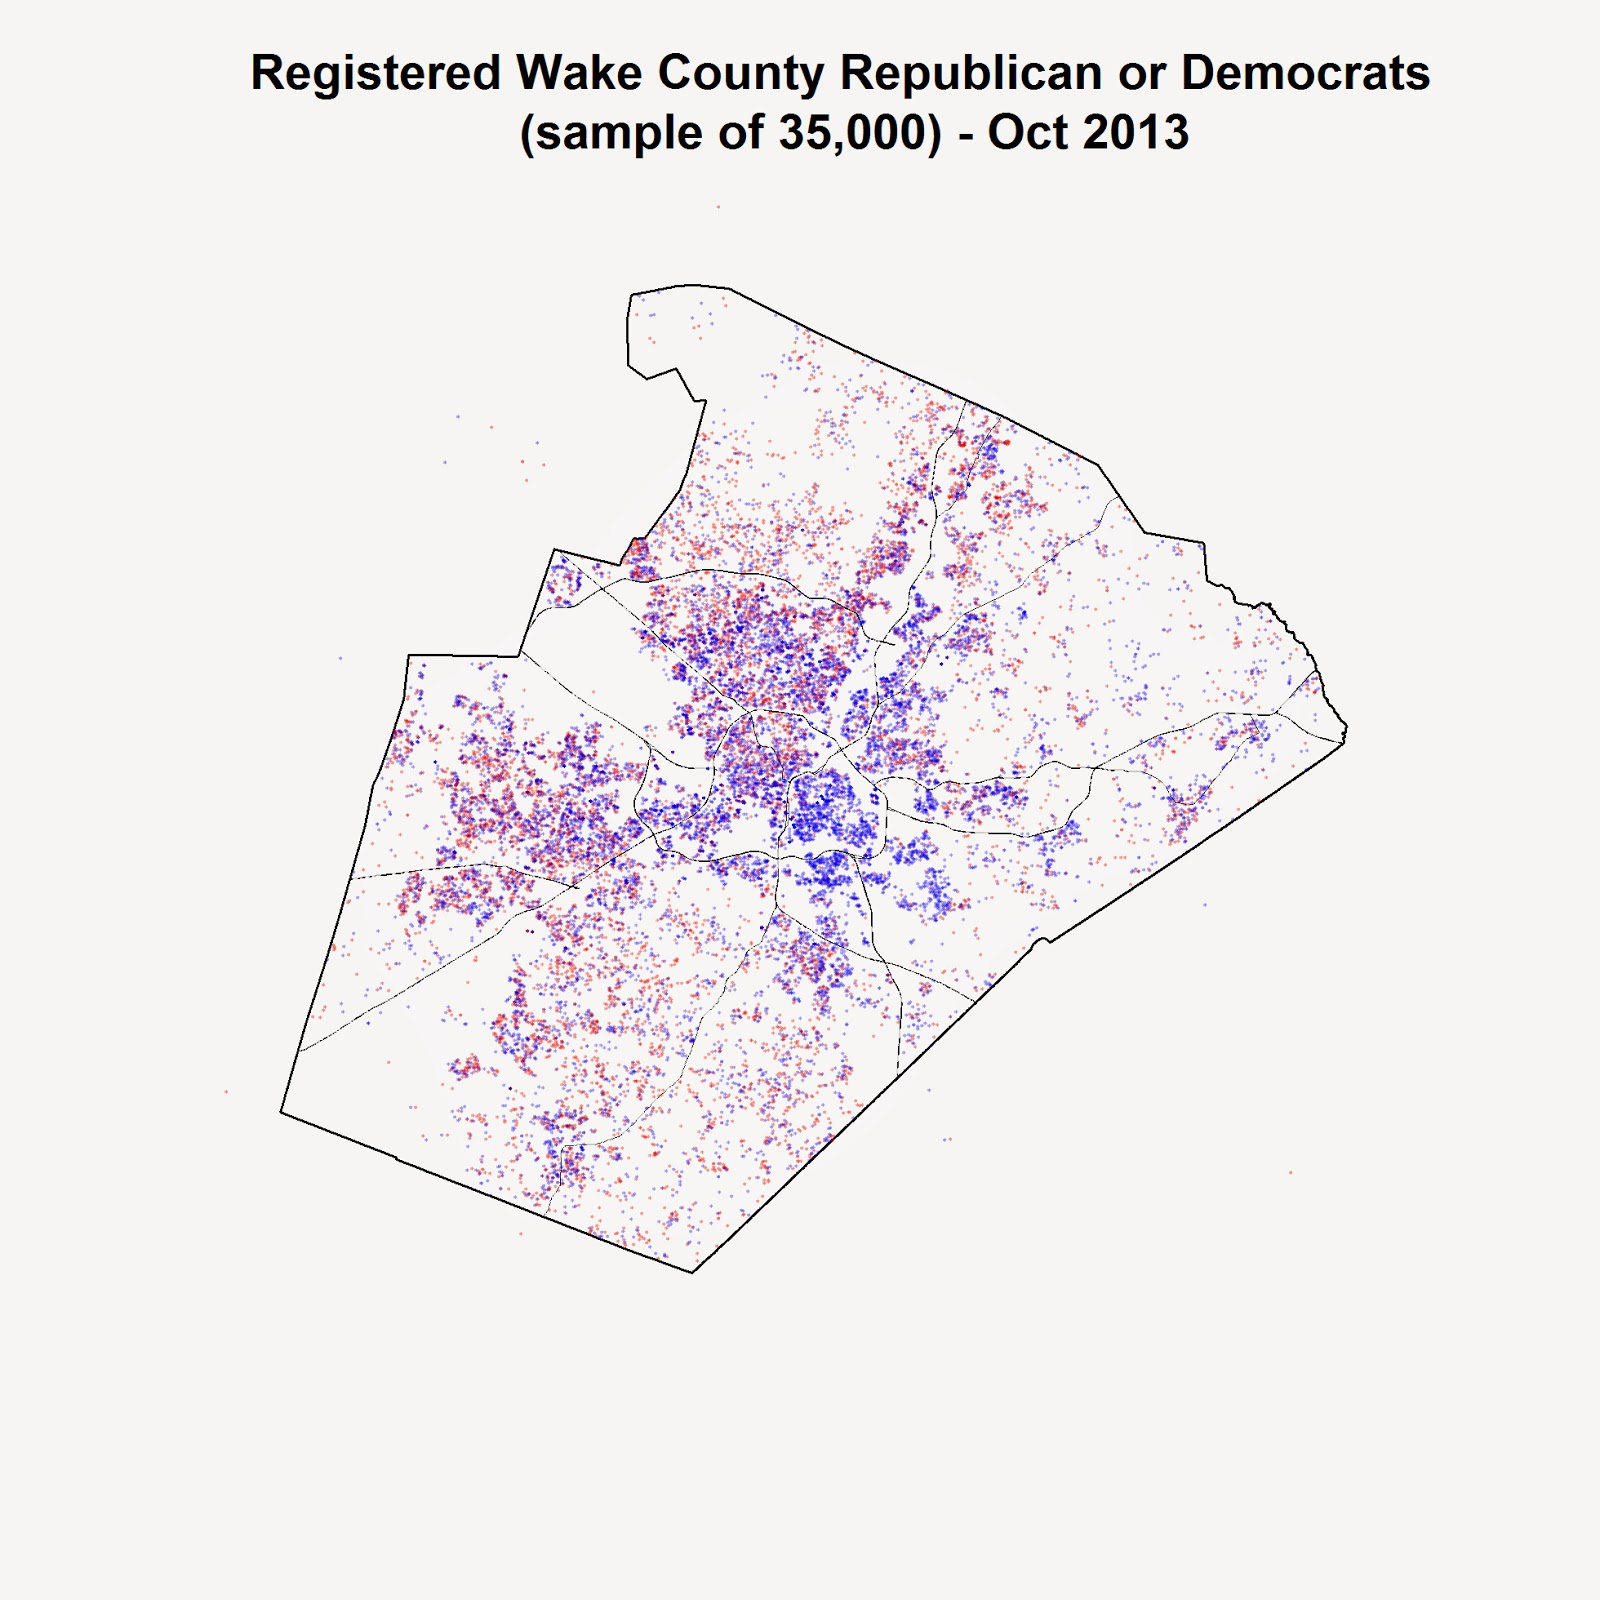 a map of registered republicans and democrats in wake county